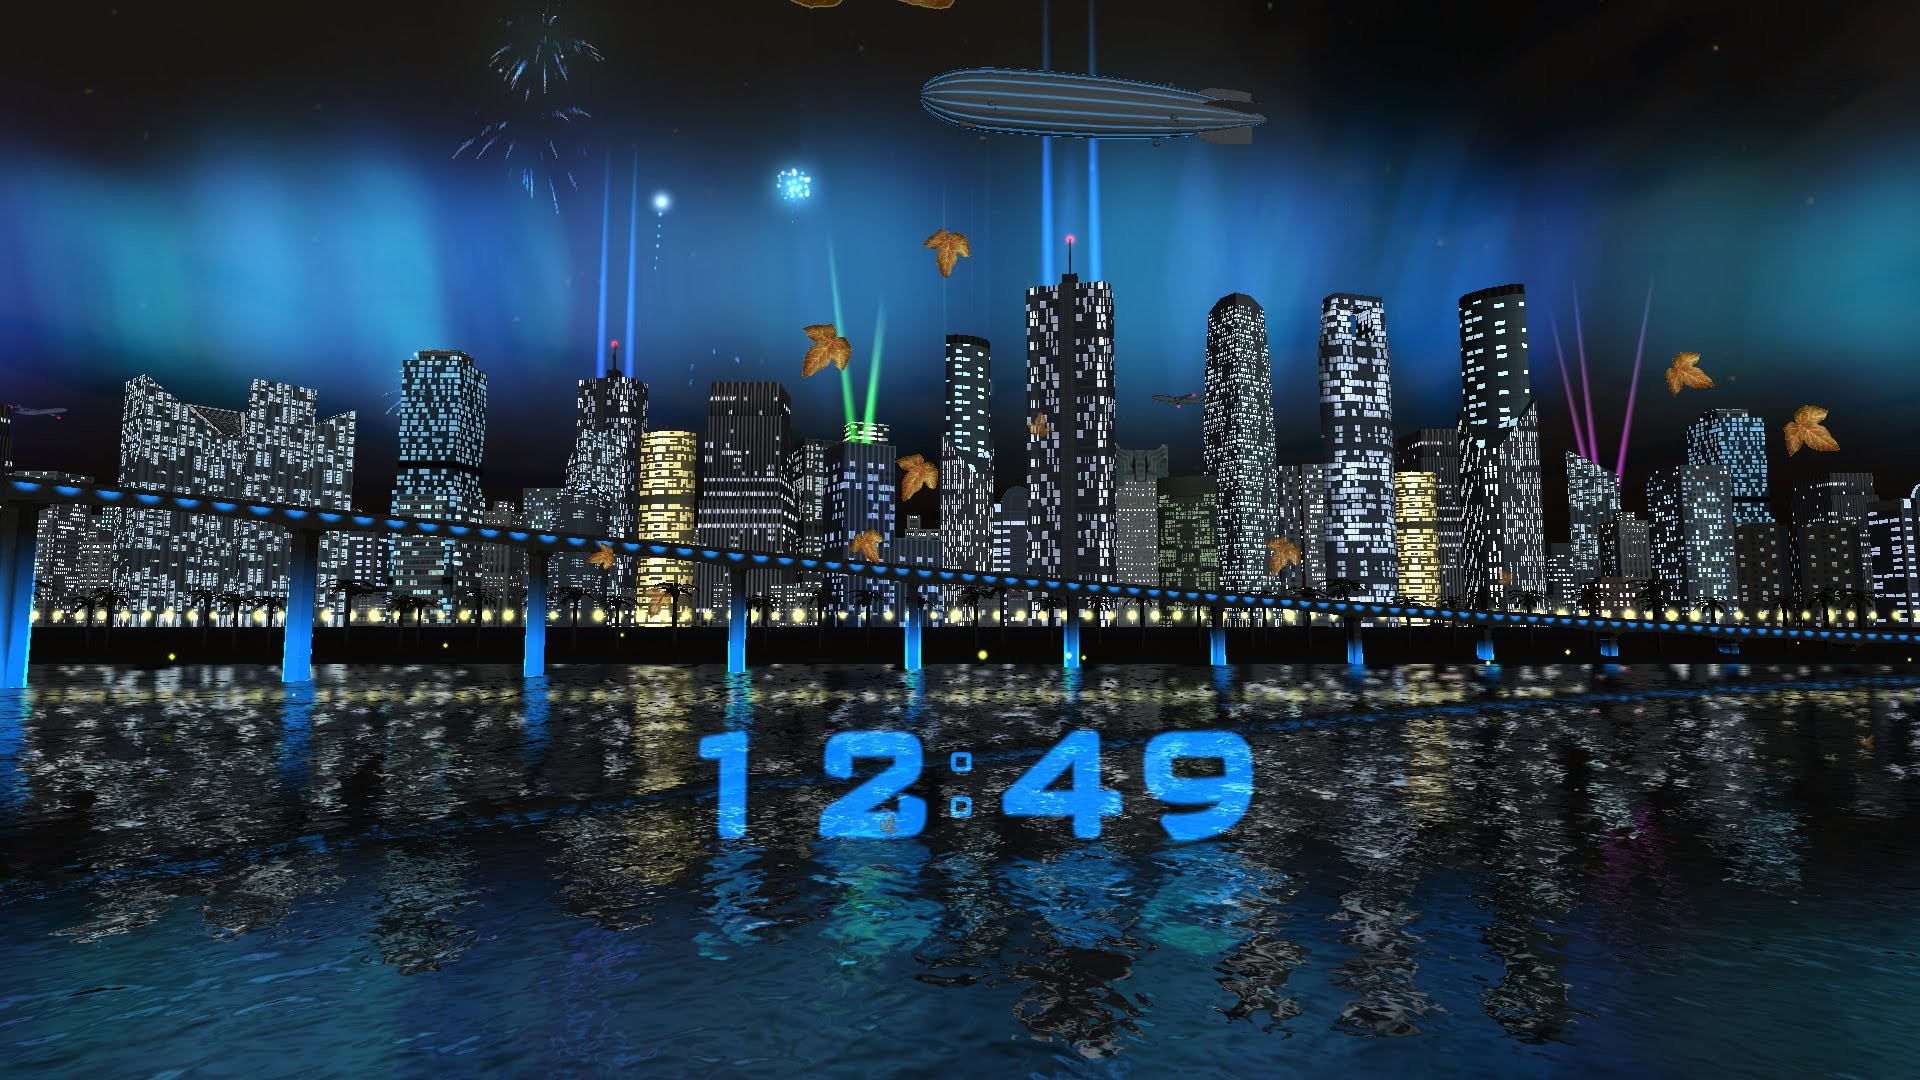 Day Night City Fireworks LWP (v.1.0.3) – Live wallpaper by Exacron Full HD(1080p)  – YouTube